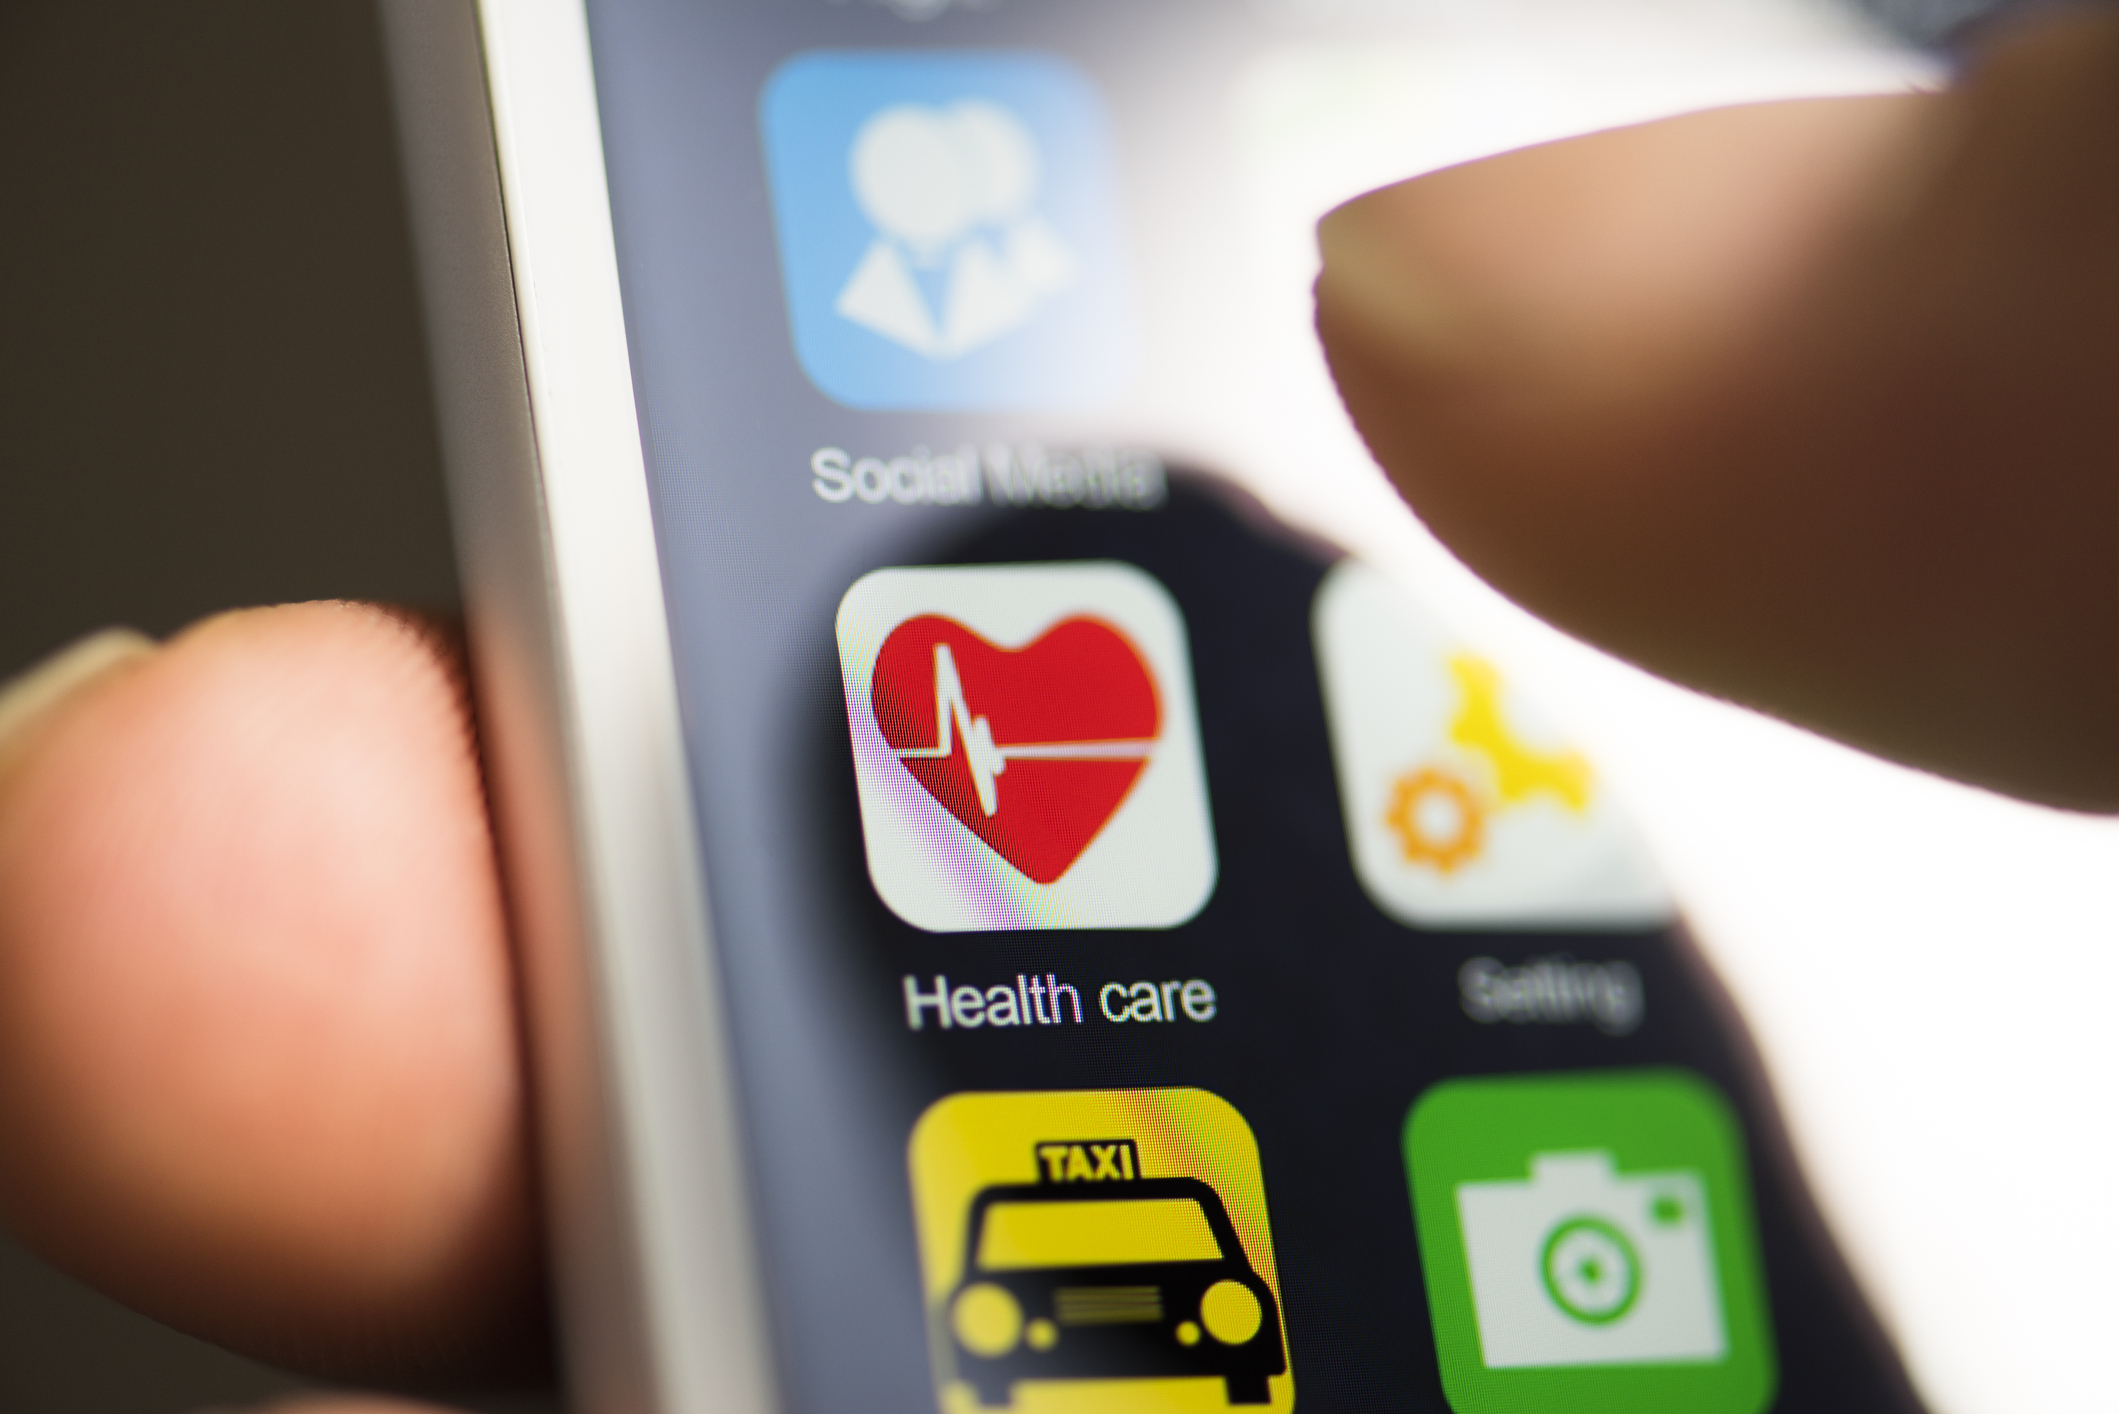 Closeup of smartphone screen with finger hovering over a healthcare app